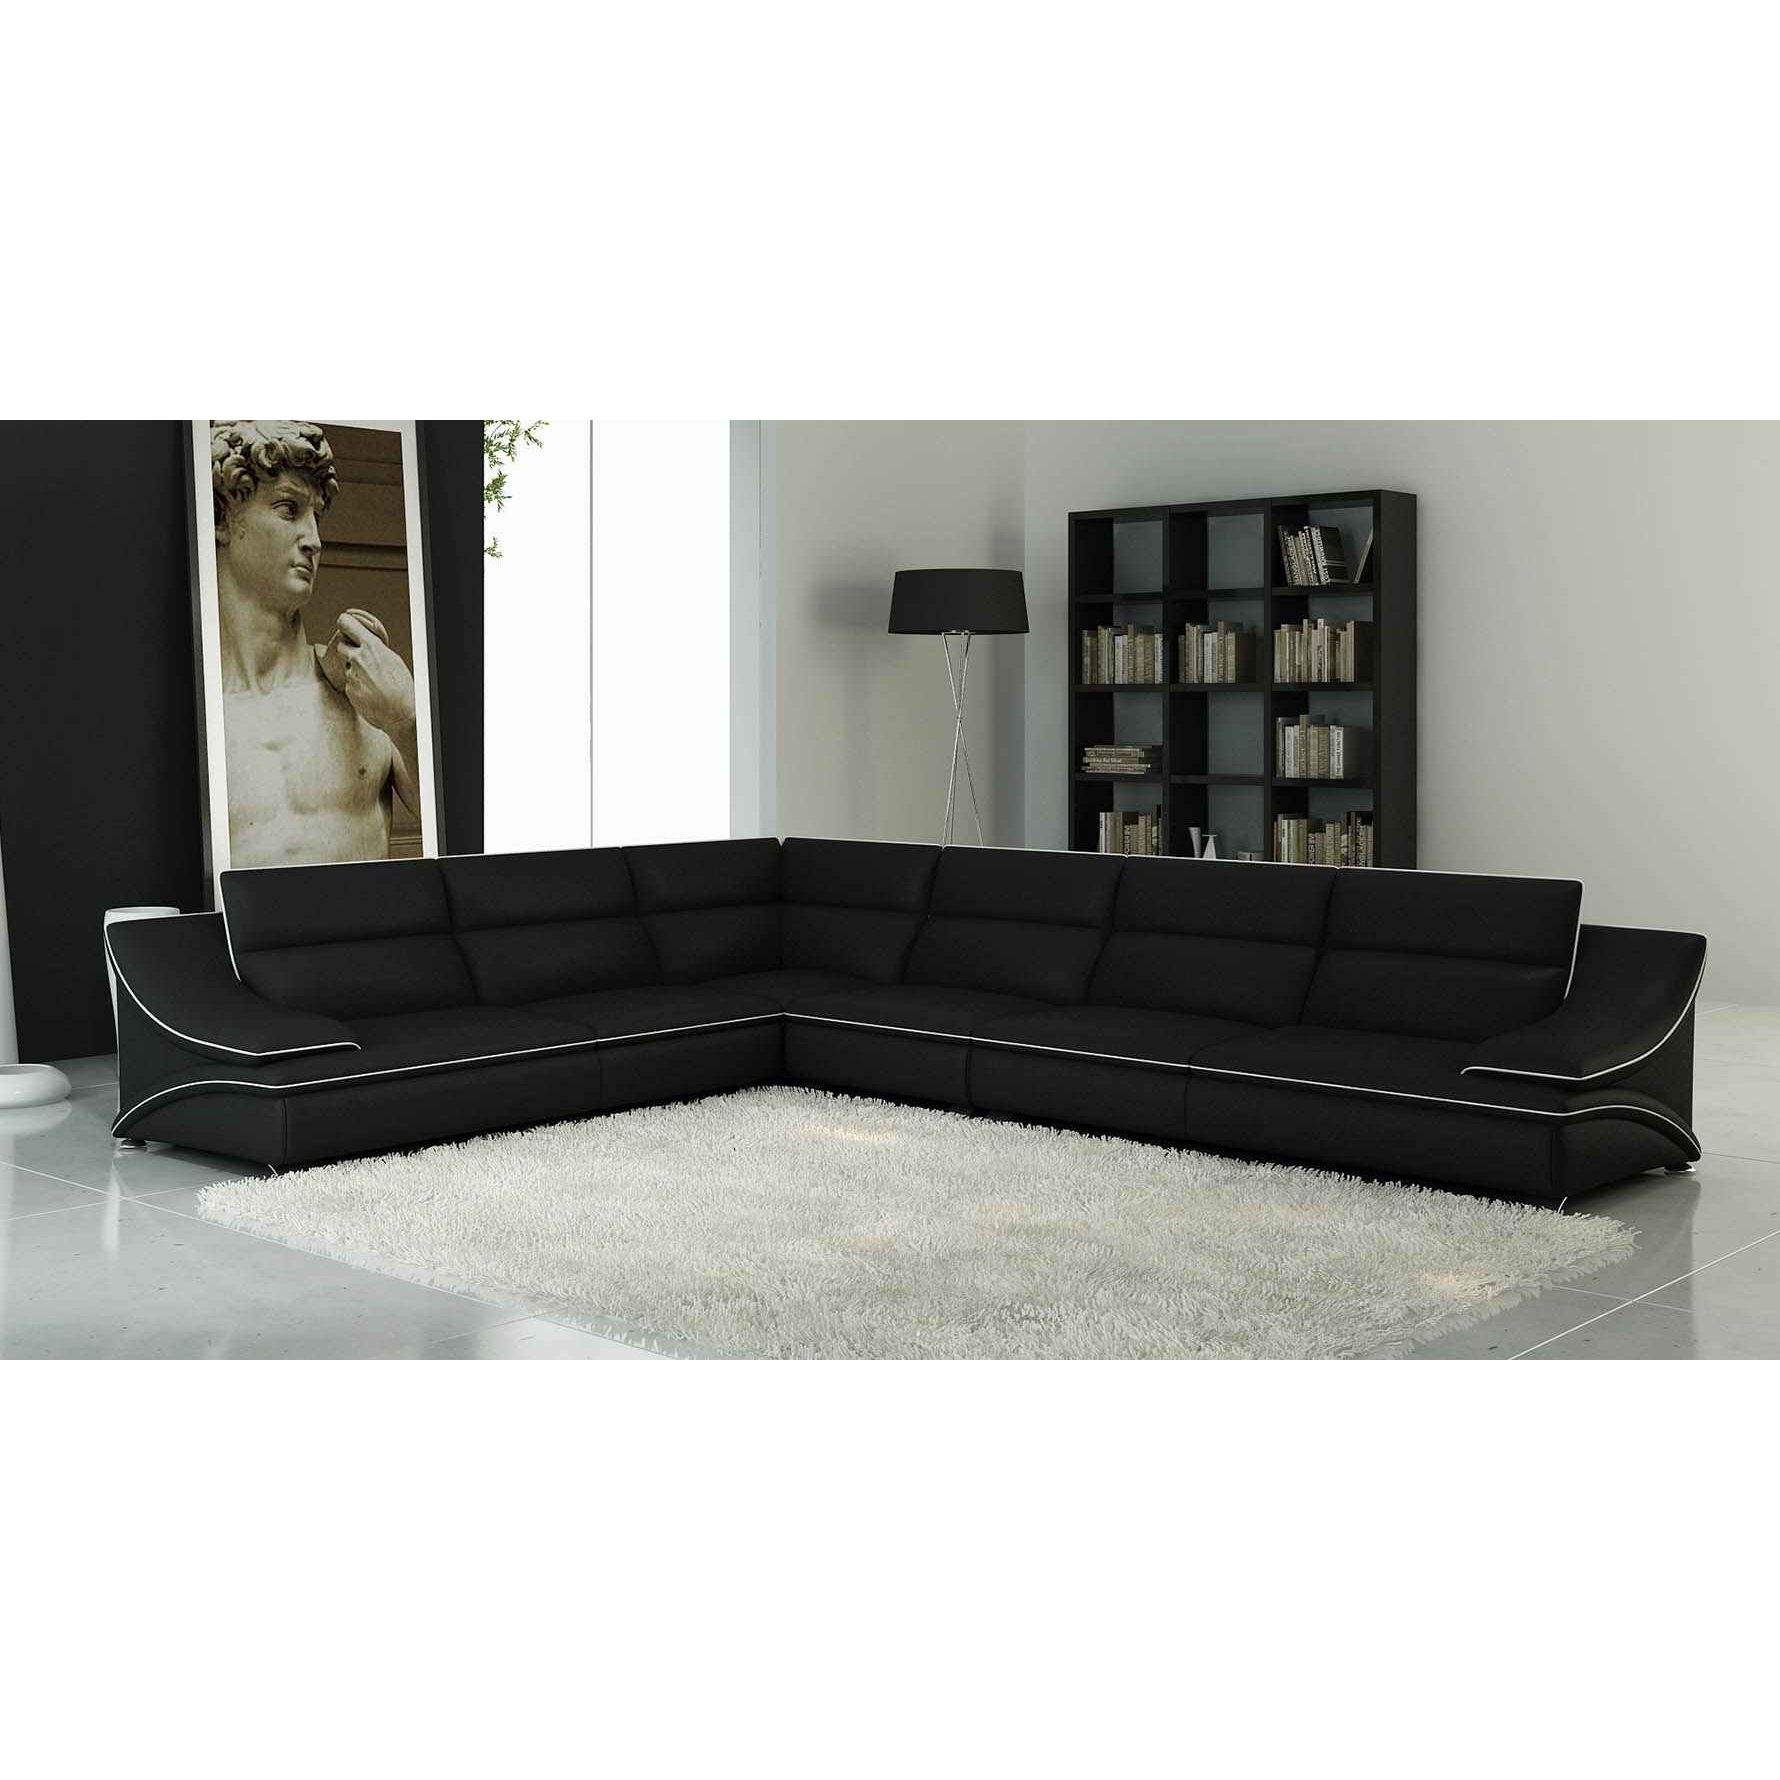 deco in paris canape d angle modulable cuir design noir. Black Bedroom Furniture Sets. Home Design Ideas